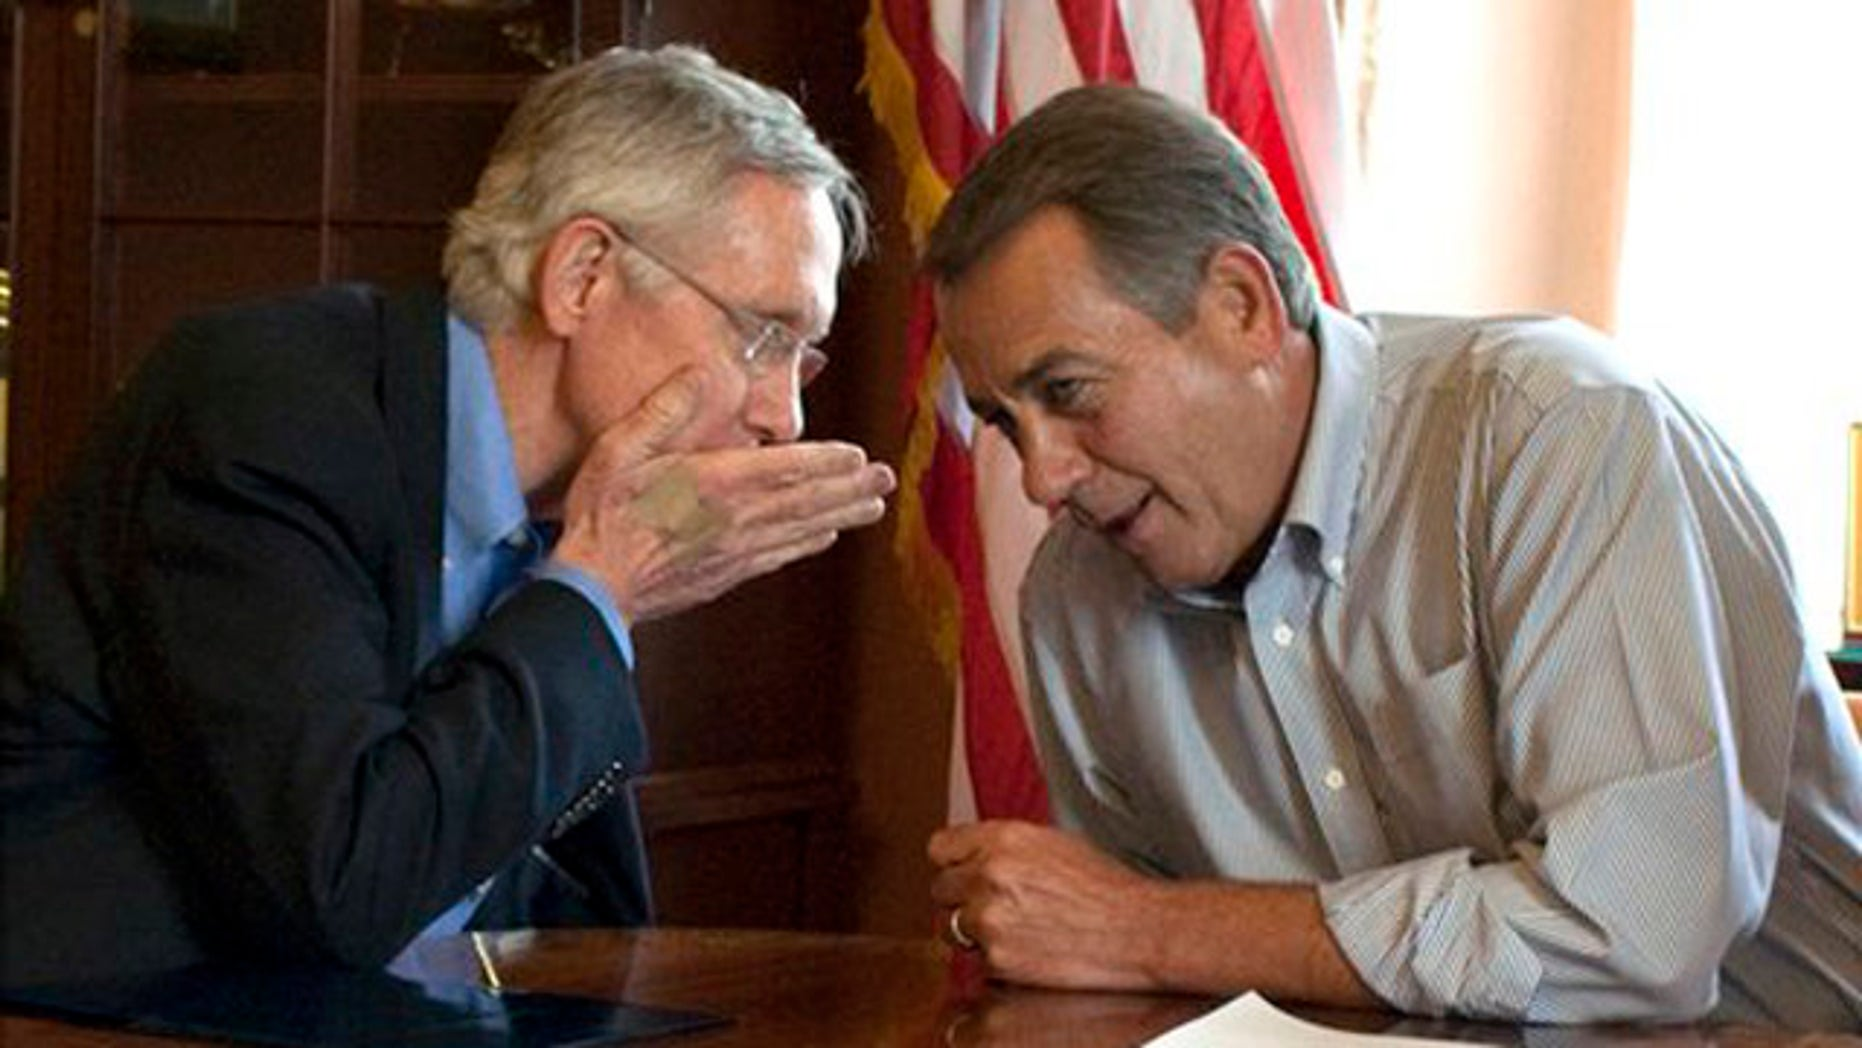 Senate Majority Leader Harry Reid holds his hand up as he whispers to House Speaker John Boehner during a photo opportunity in the House Speaker's office in Washington July 23.